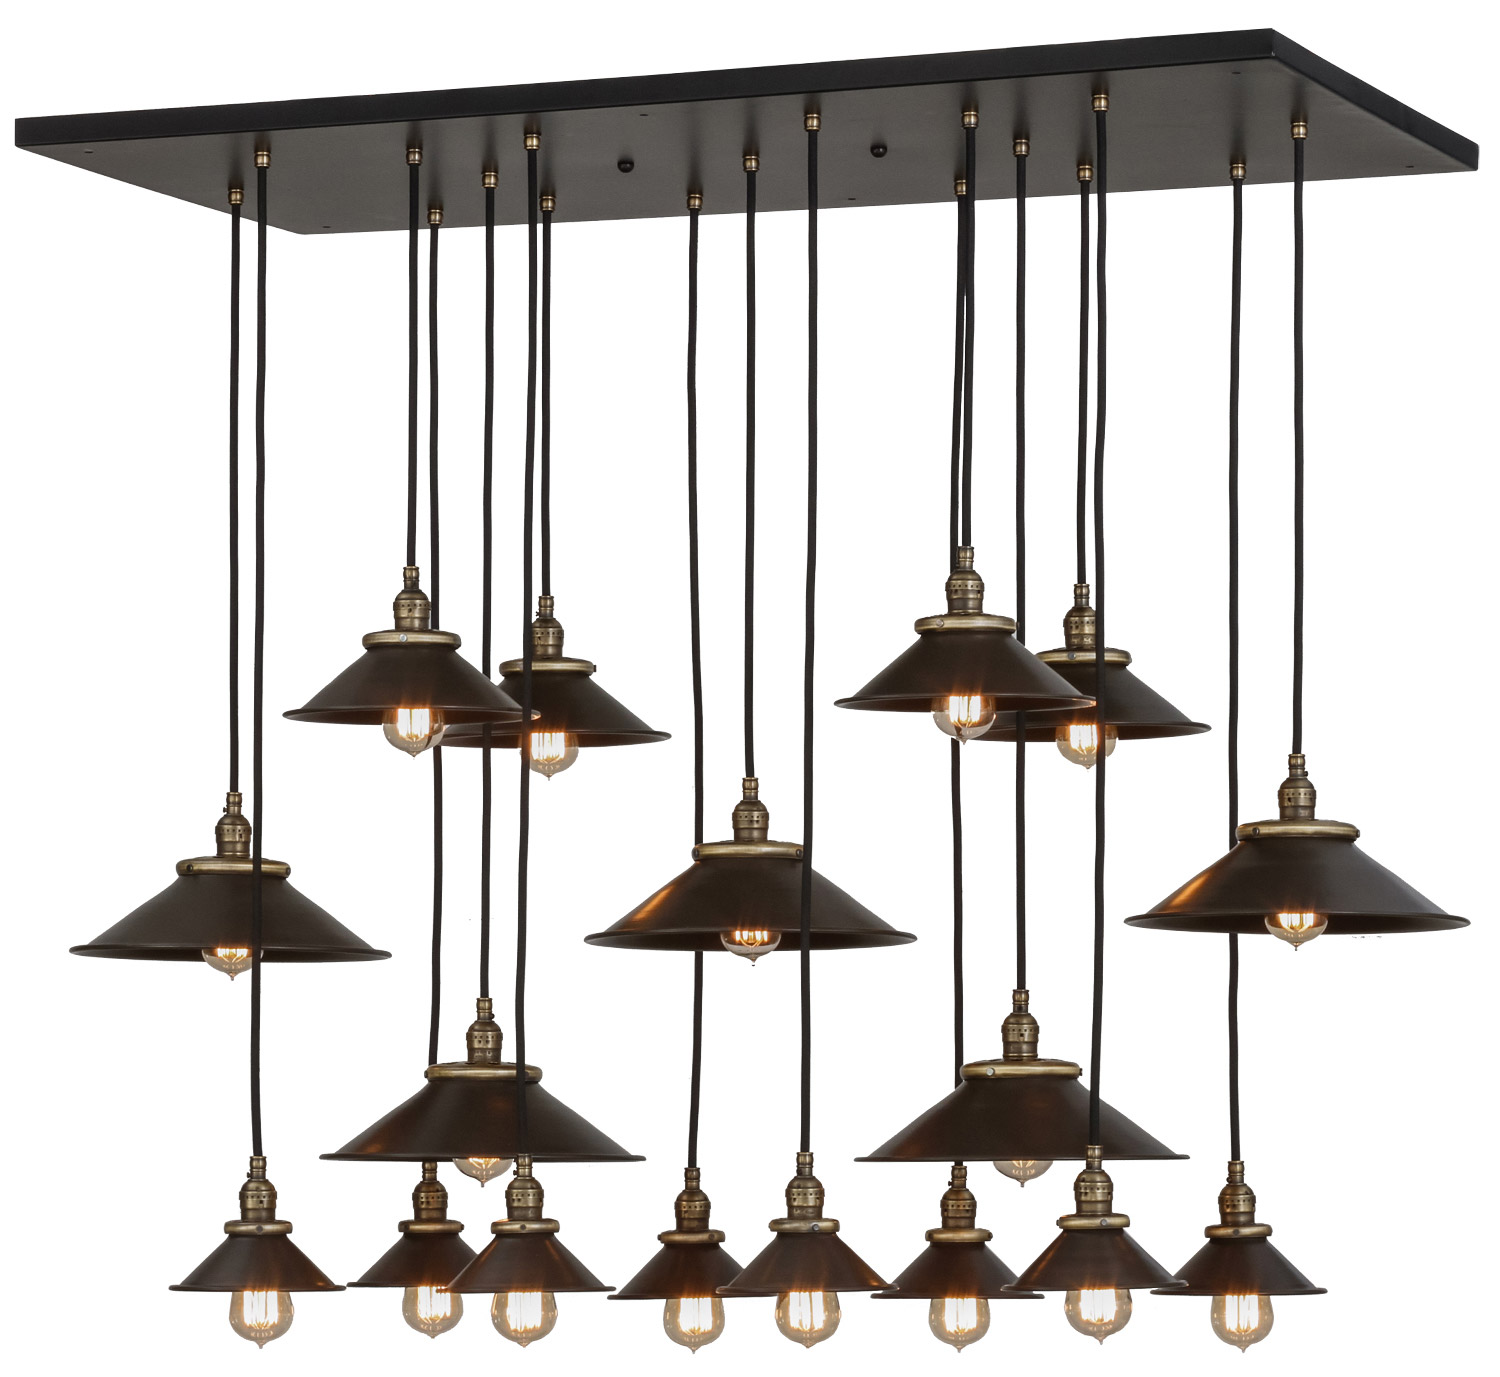 Rustic Pendant Light Fixtures